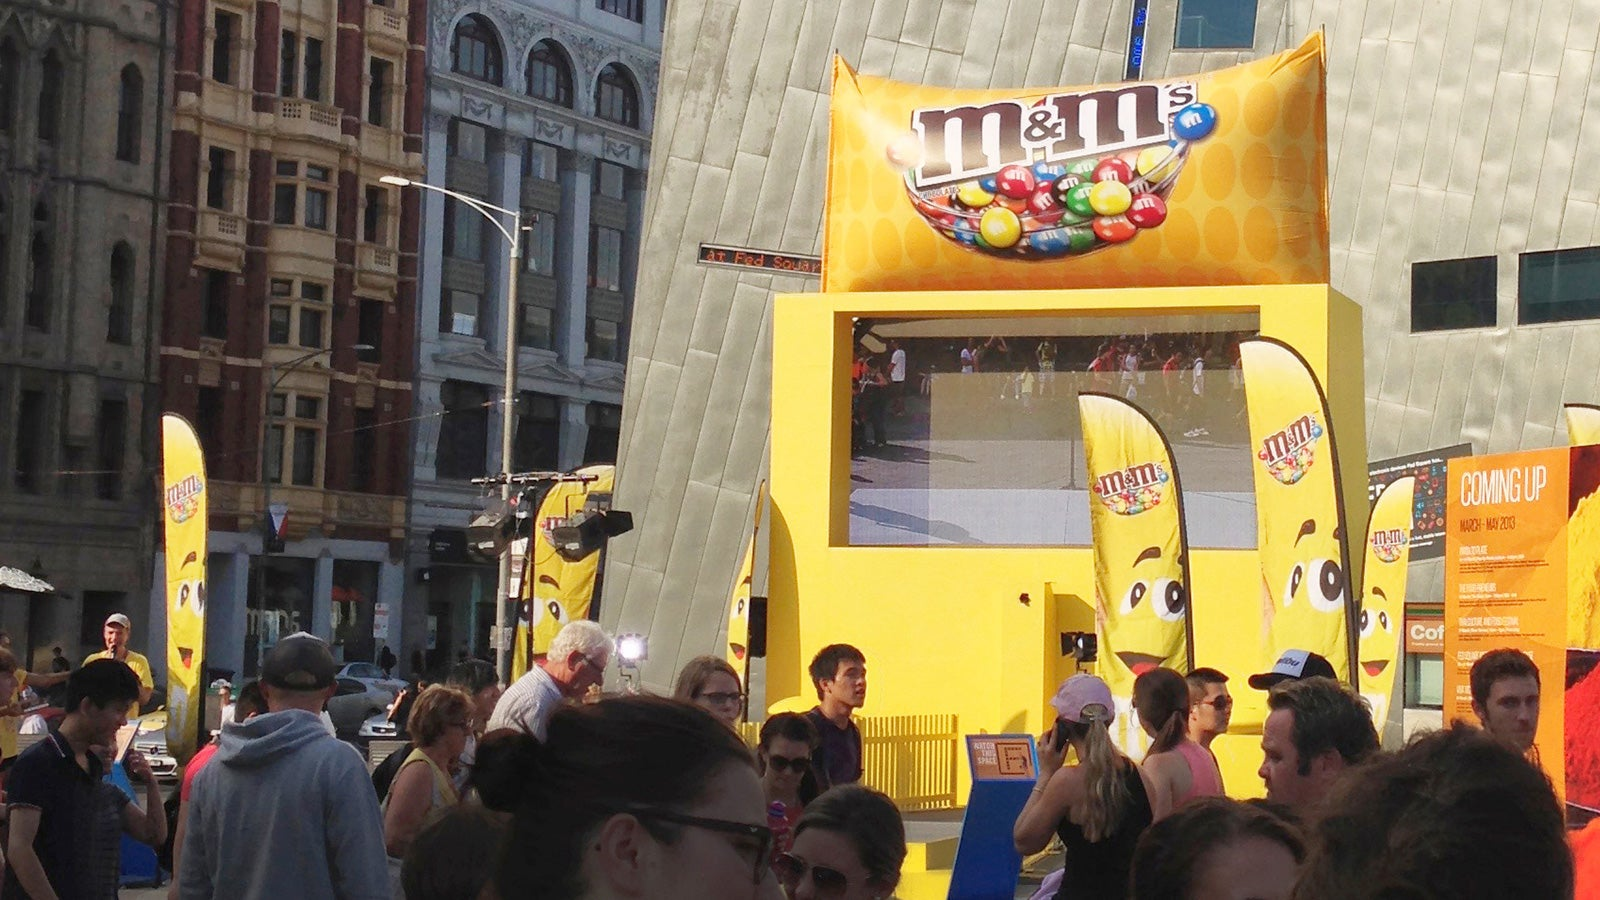 M&M's | M&M's augmented reality display in Melbourne's Federation Square | Devotion